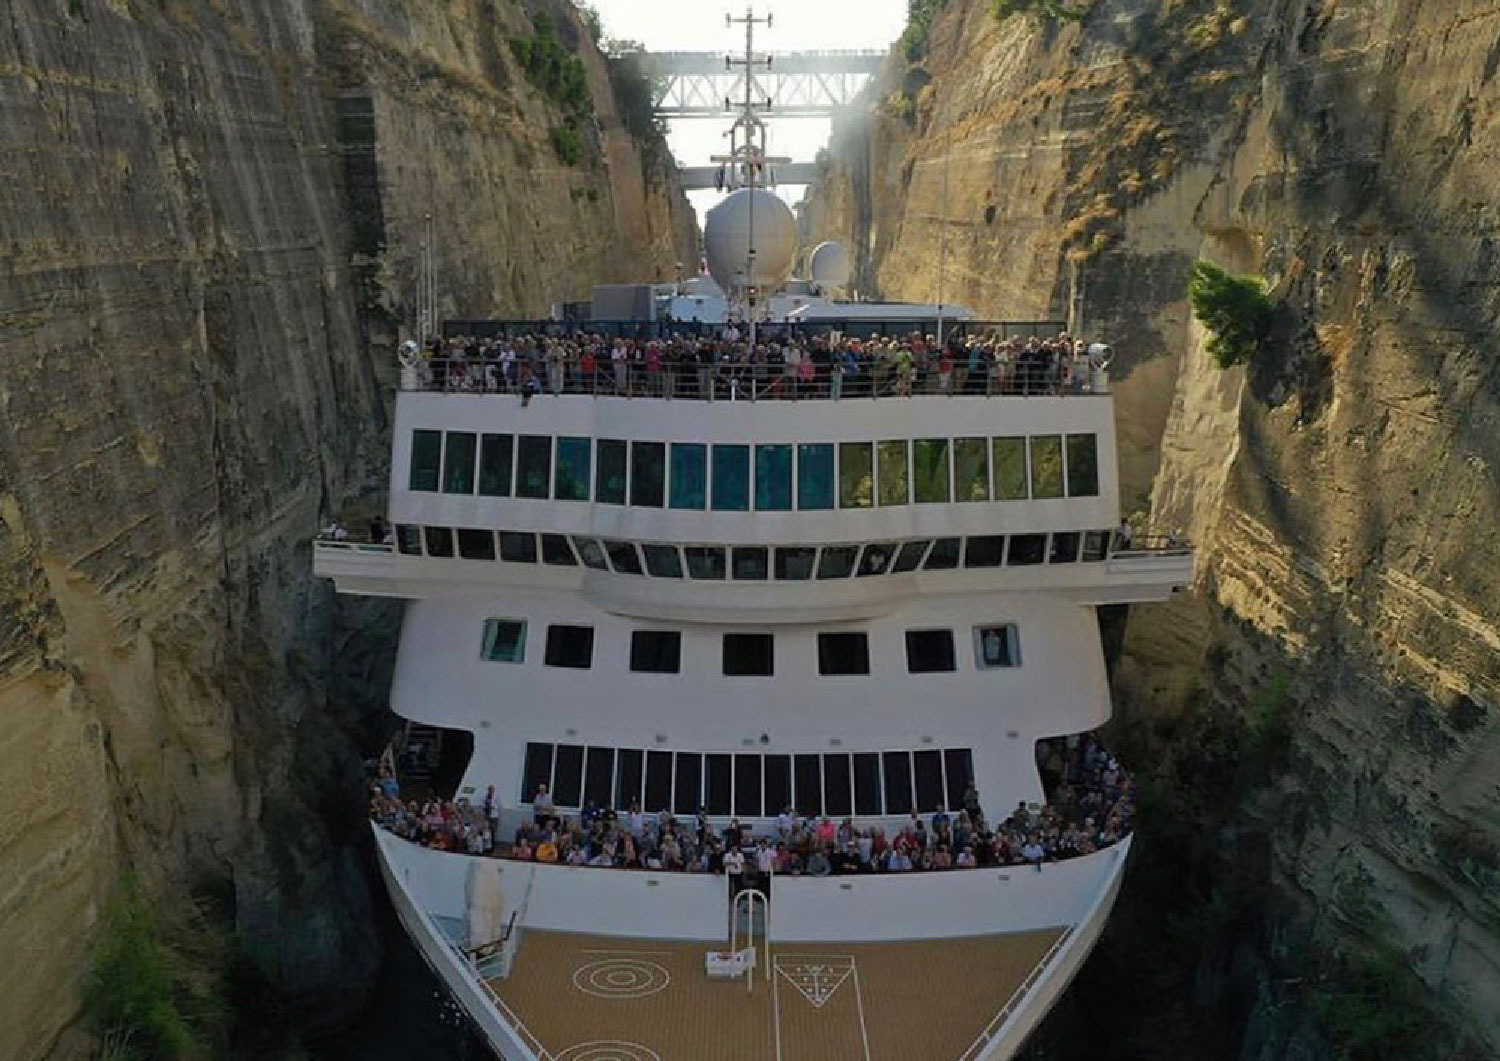 Watch: Cruise ship squeezes through Corinth canal